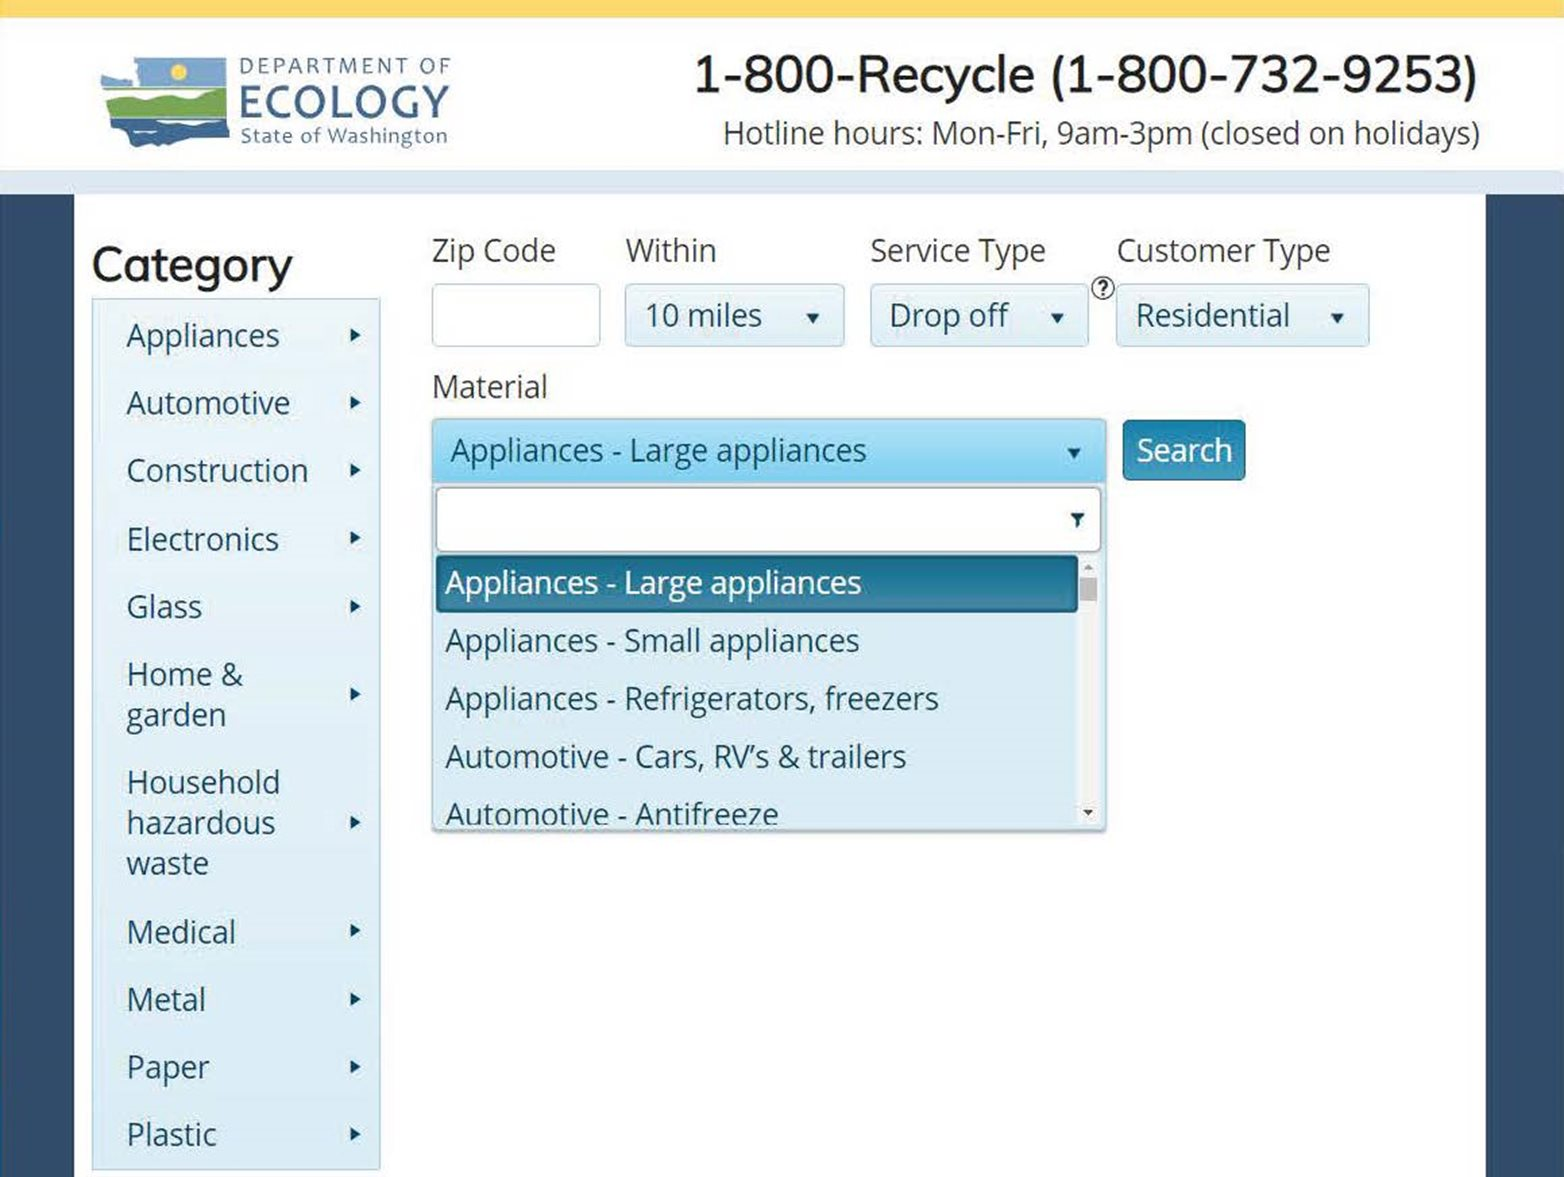 An image is displayed showing the redesigned 1-800-RECYCLE database, where you can search for recycling services based on your location and the type of material you want to recycle.